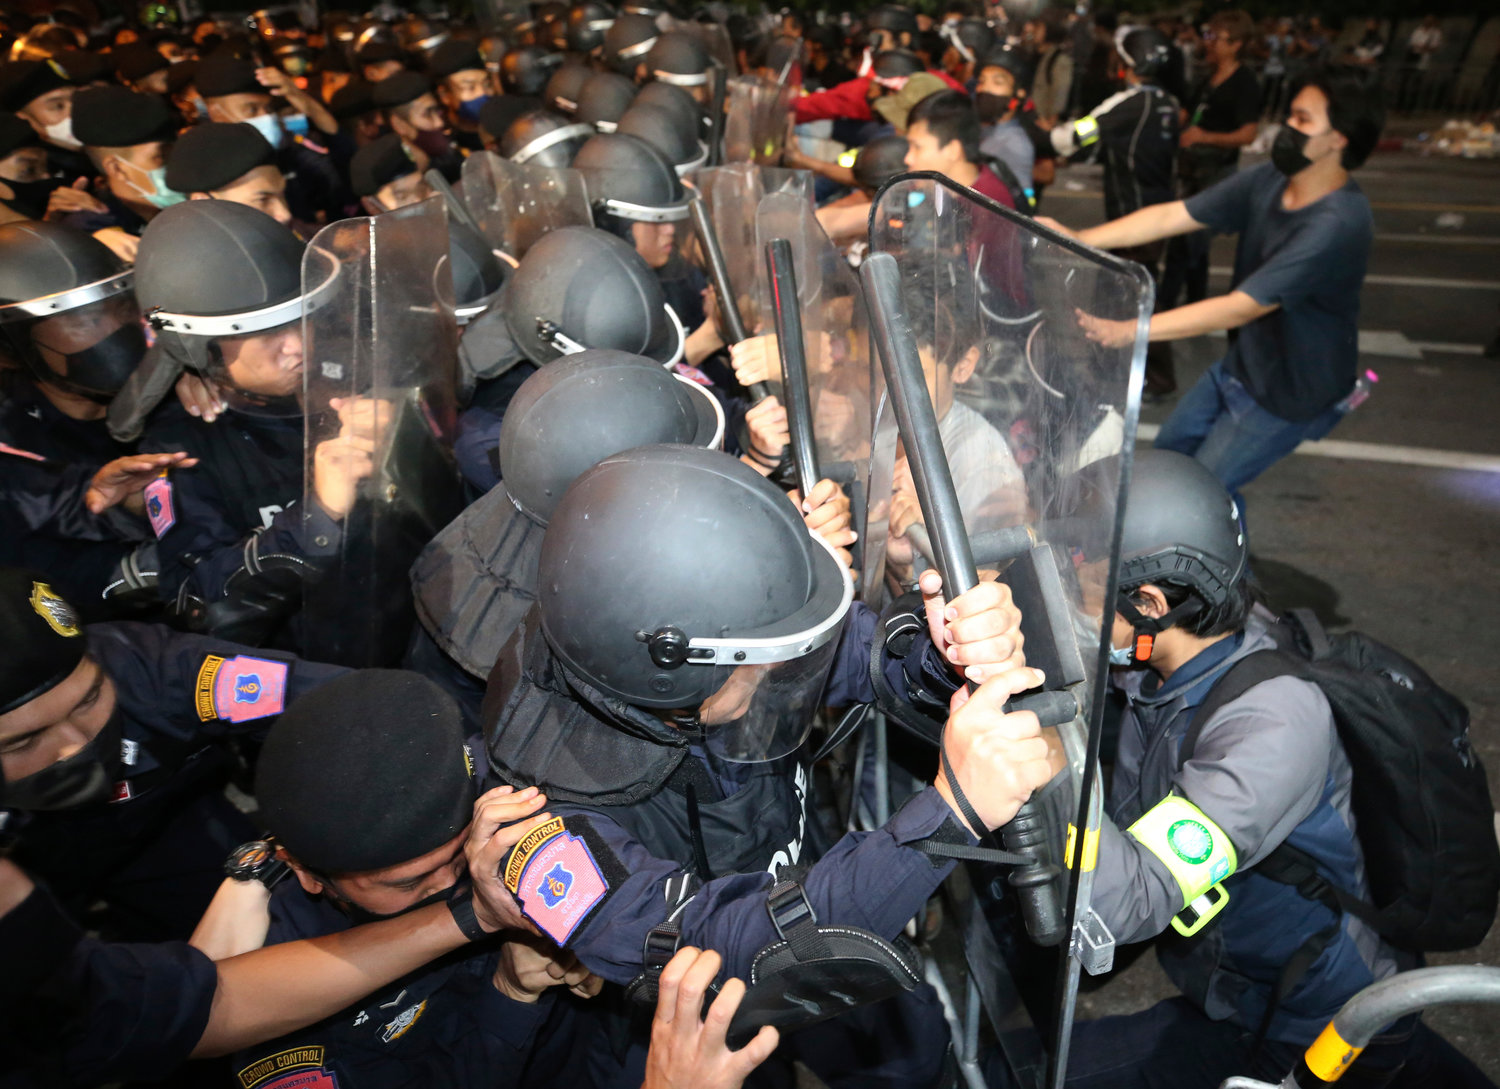 Protesters push Thai policemen with riot shields during demonstration in Bangkok, Thailand, Thursday, Oct. 15, 2020. Thai police dispersed a group of protesters holding an overnight rally outside the office of the Prime Minister. (AP Photo/Rapeephat Sitichailapa).